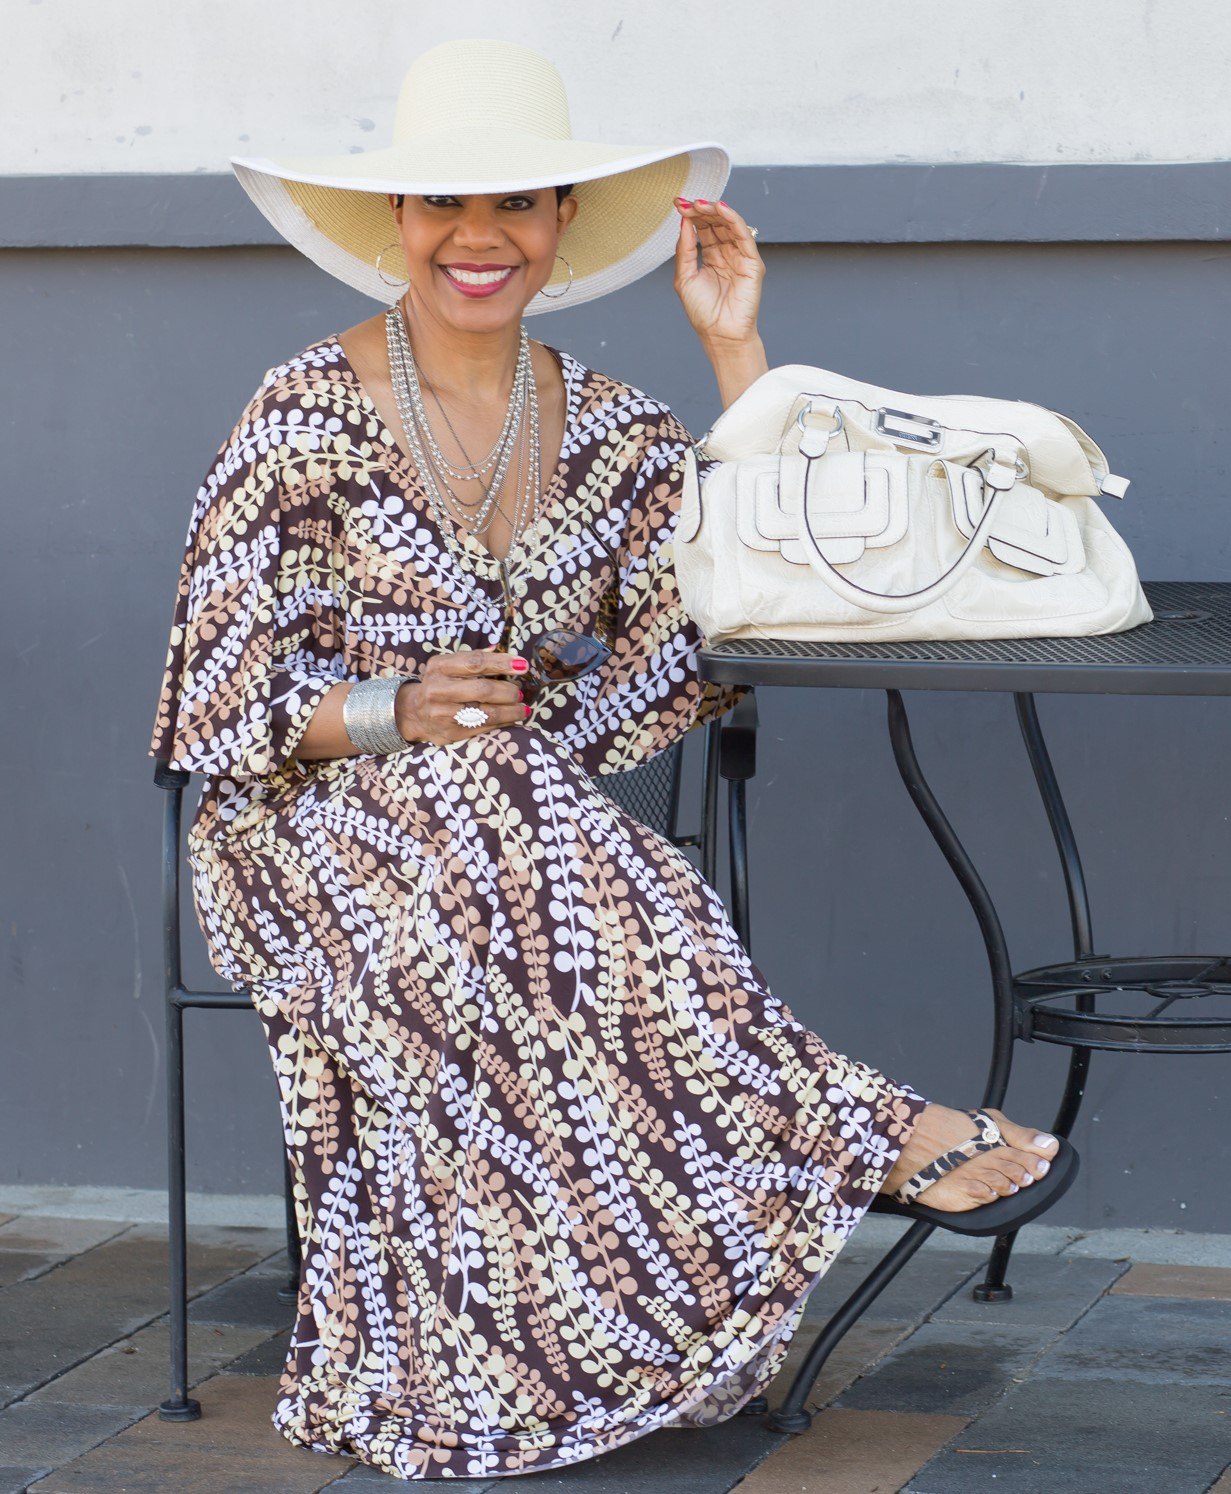 McCall's 7566 - Cape-Style Maxi Dress